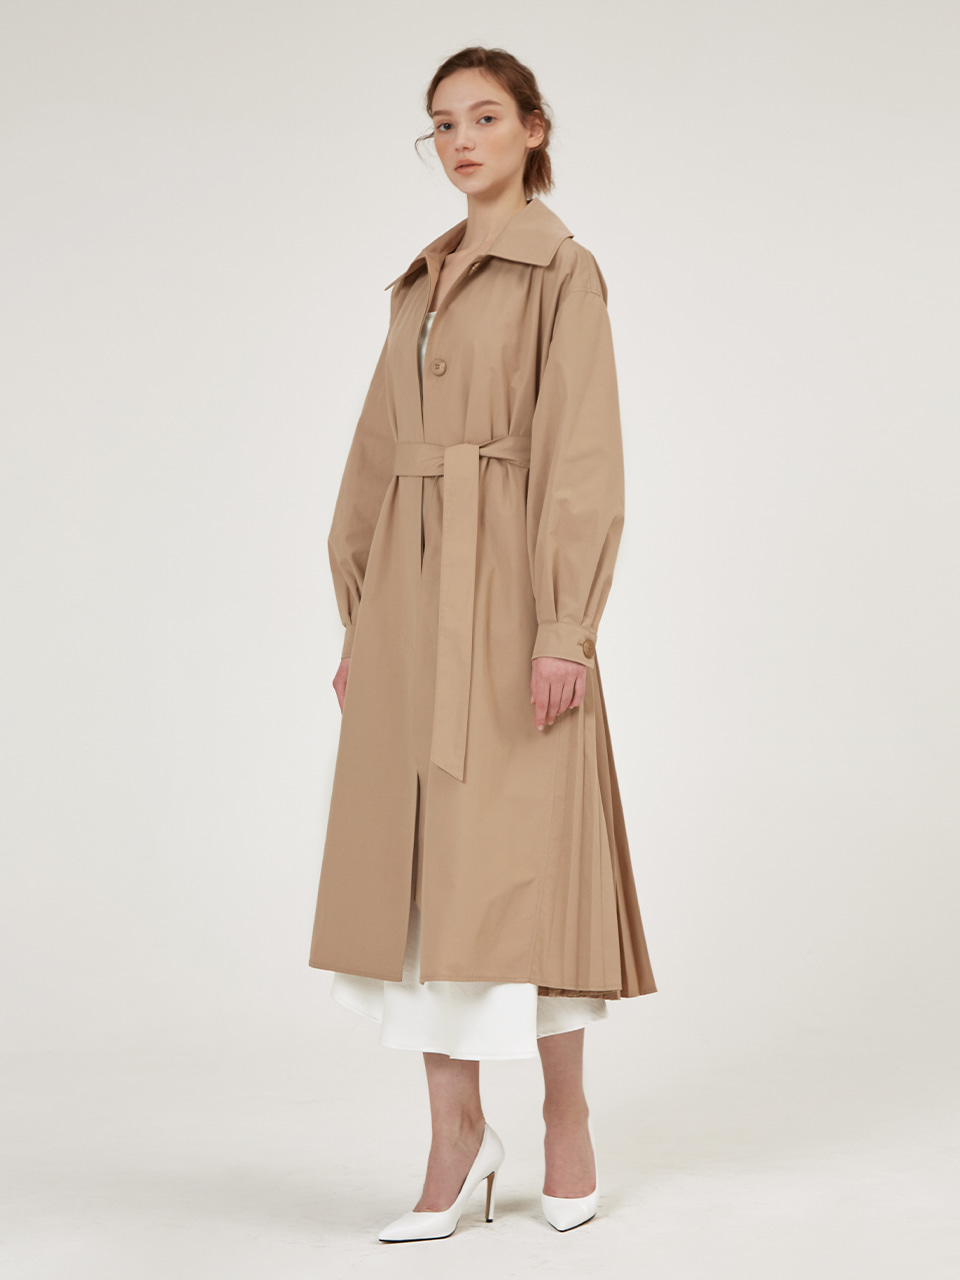 HALF PLEATS DETAILED TRECH DRESS [Cold Beige] [Black] [Warm Beige]